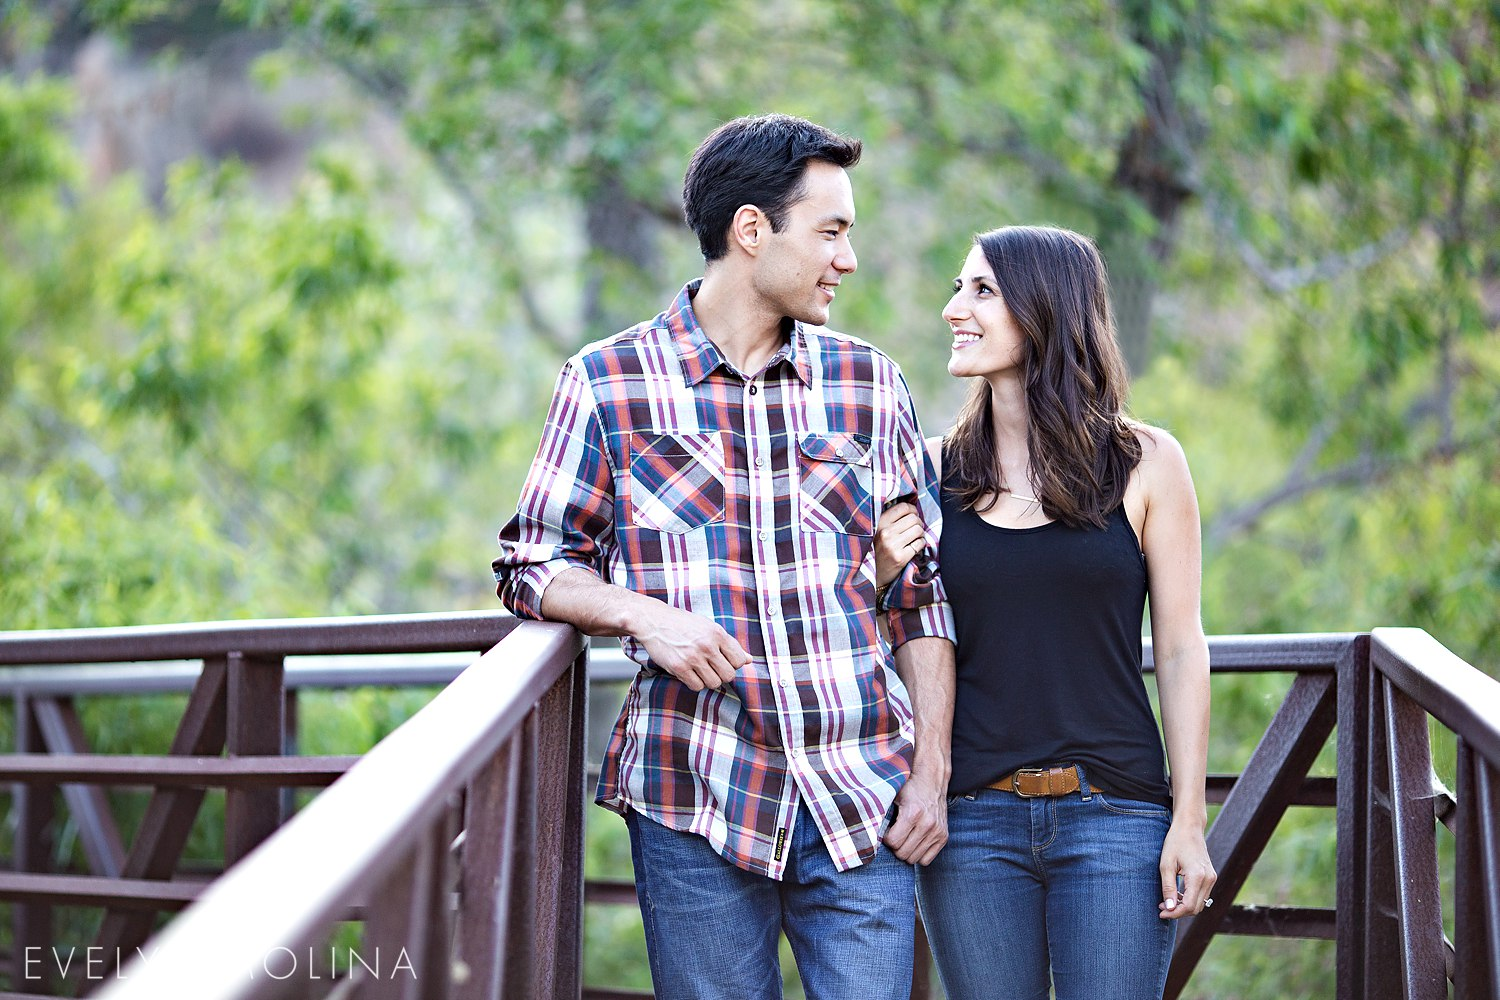 Mission Trails Engagement - Evelyn Molina Photography_004.jpg